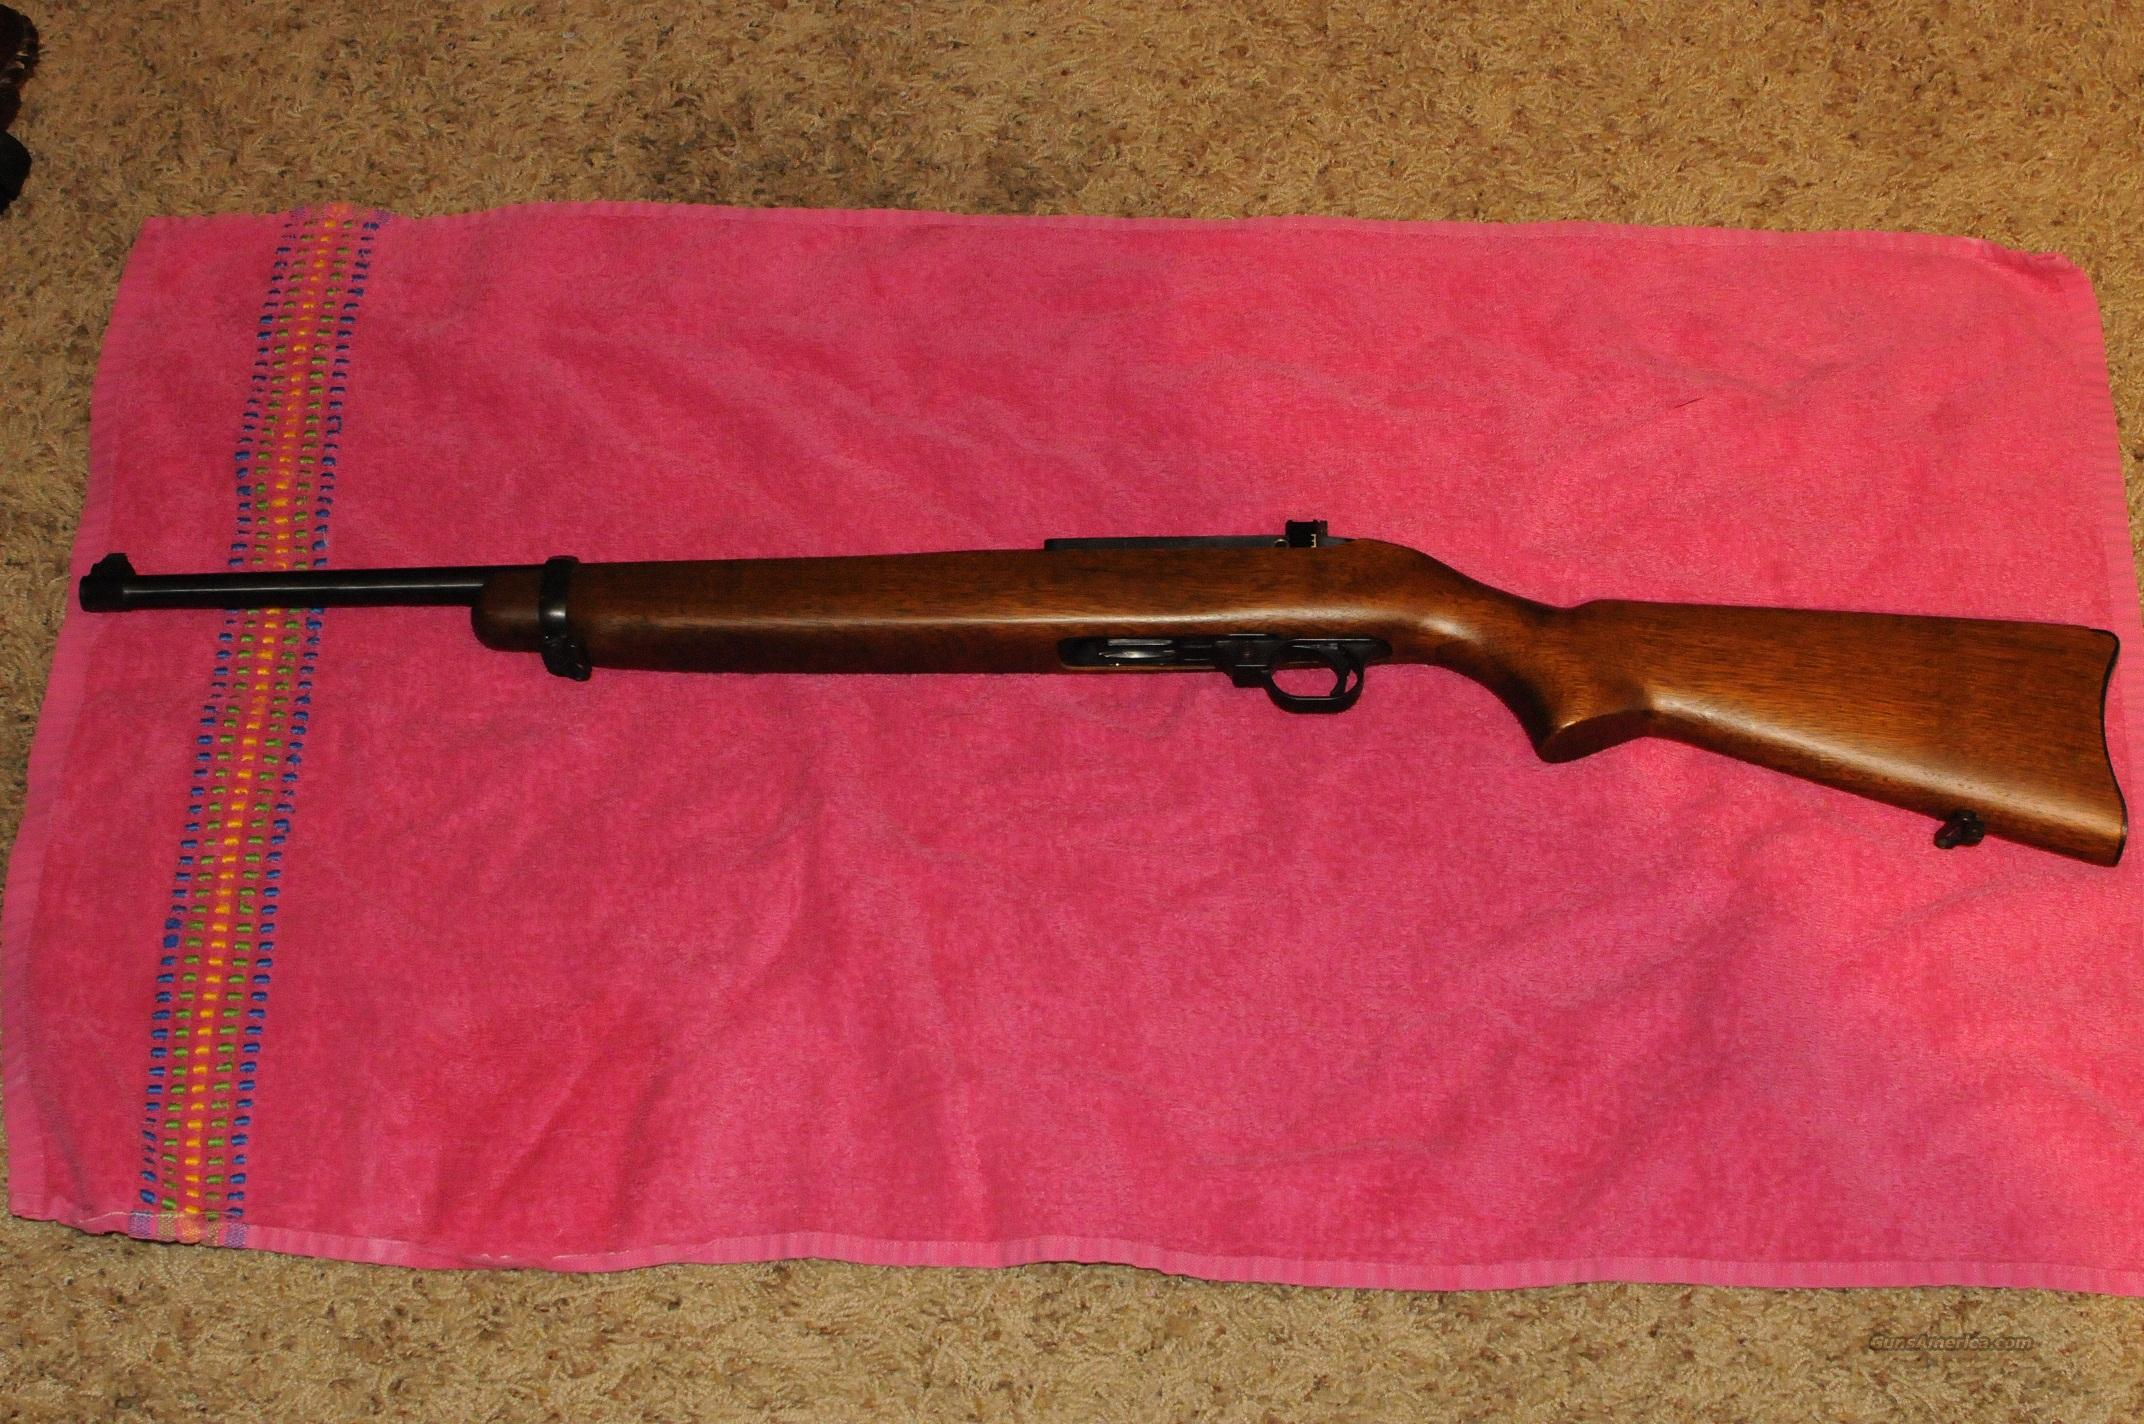 Ruger Carbine Rifle 44 Magnum (1971 model)  Guns > Rifles > Ruger Rifles > M44/Carbine